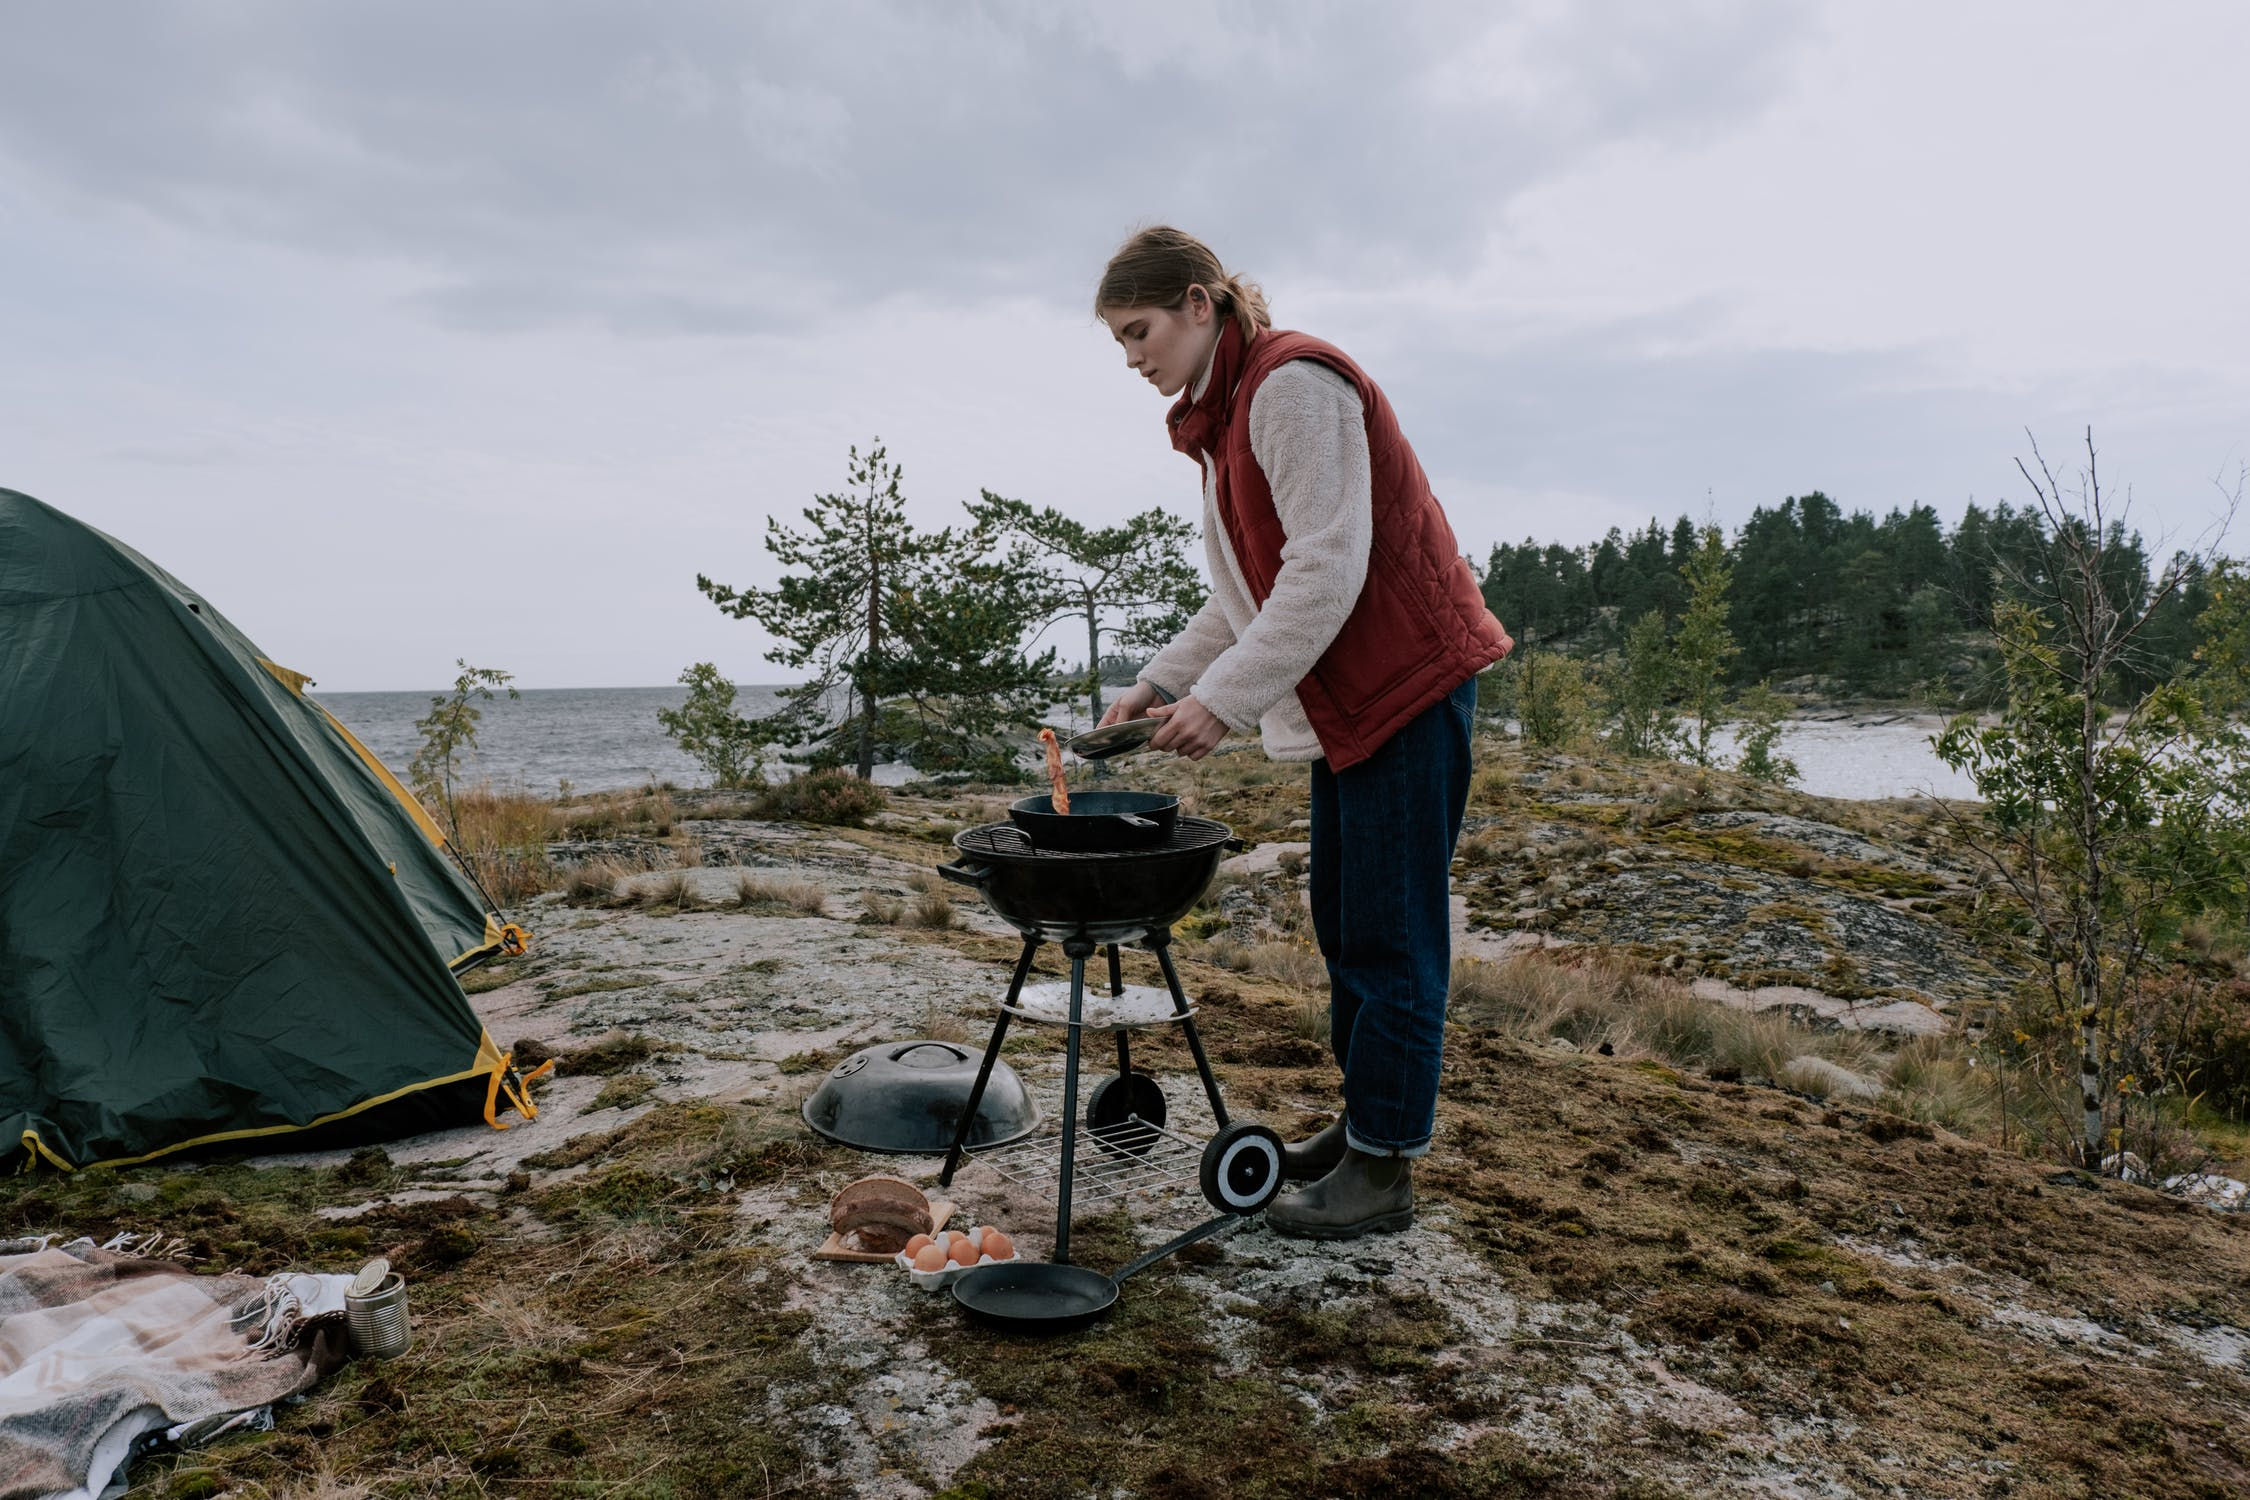 Is it safe to cook in a tent Is it safe to cook in a tent?